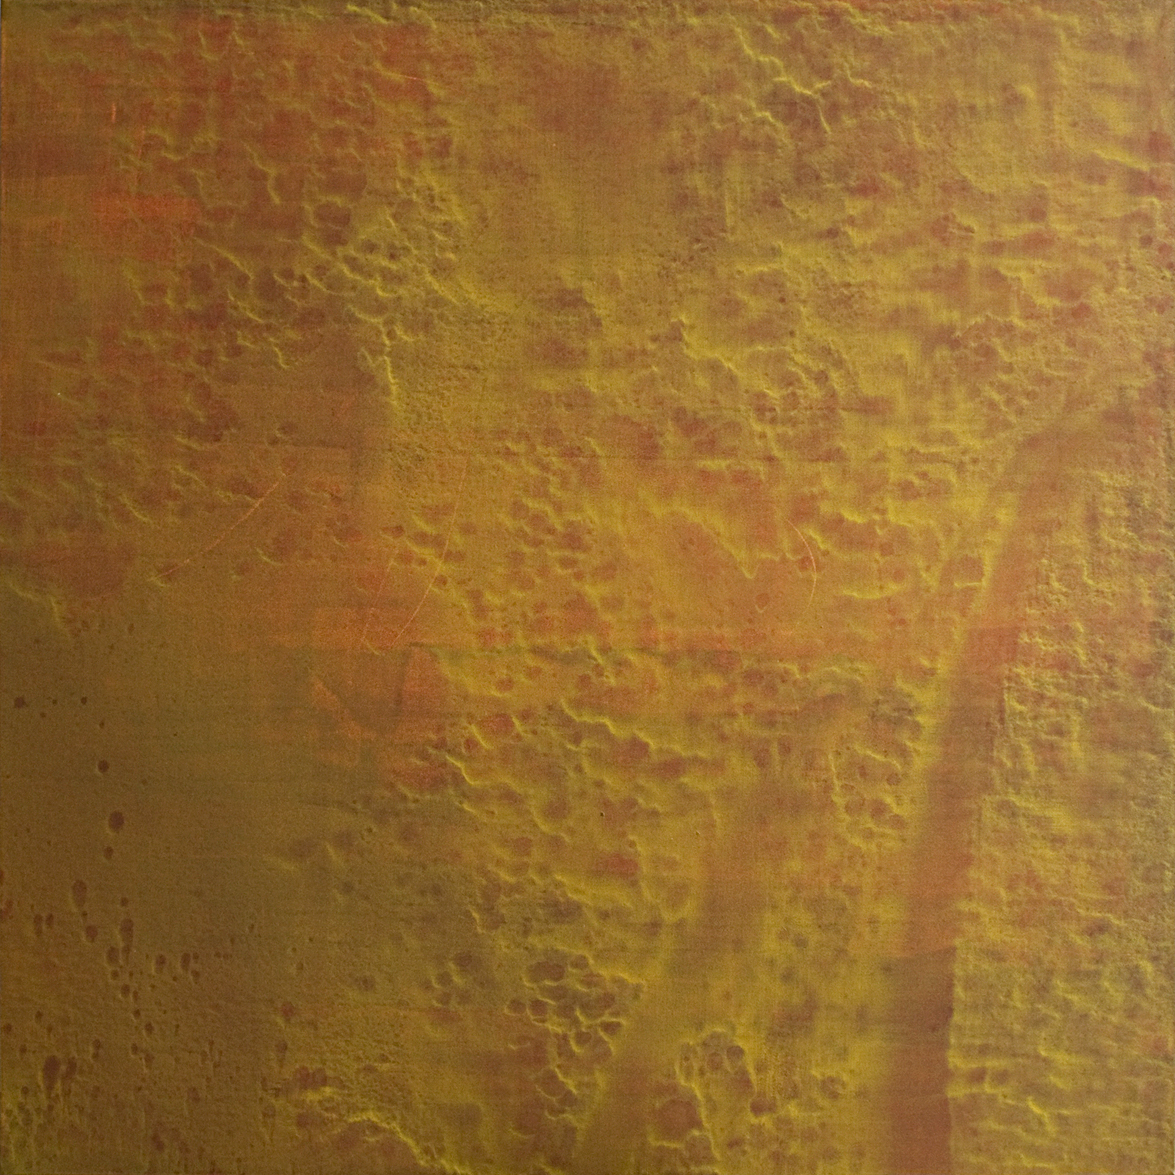 0414-03, 2014, 120 x 120 cm, Oil on Canvas